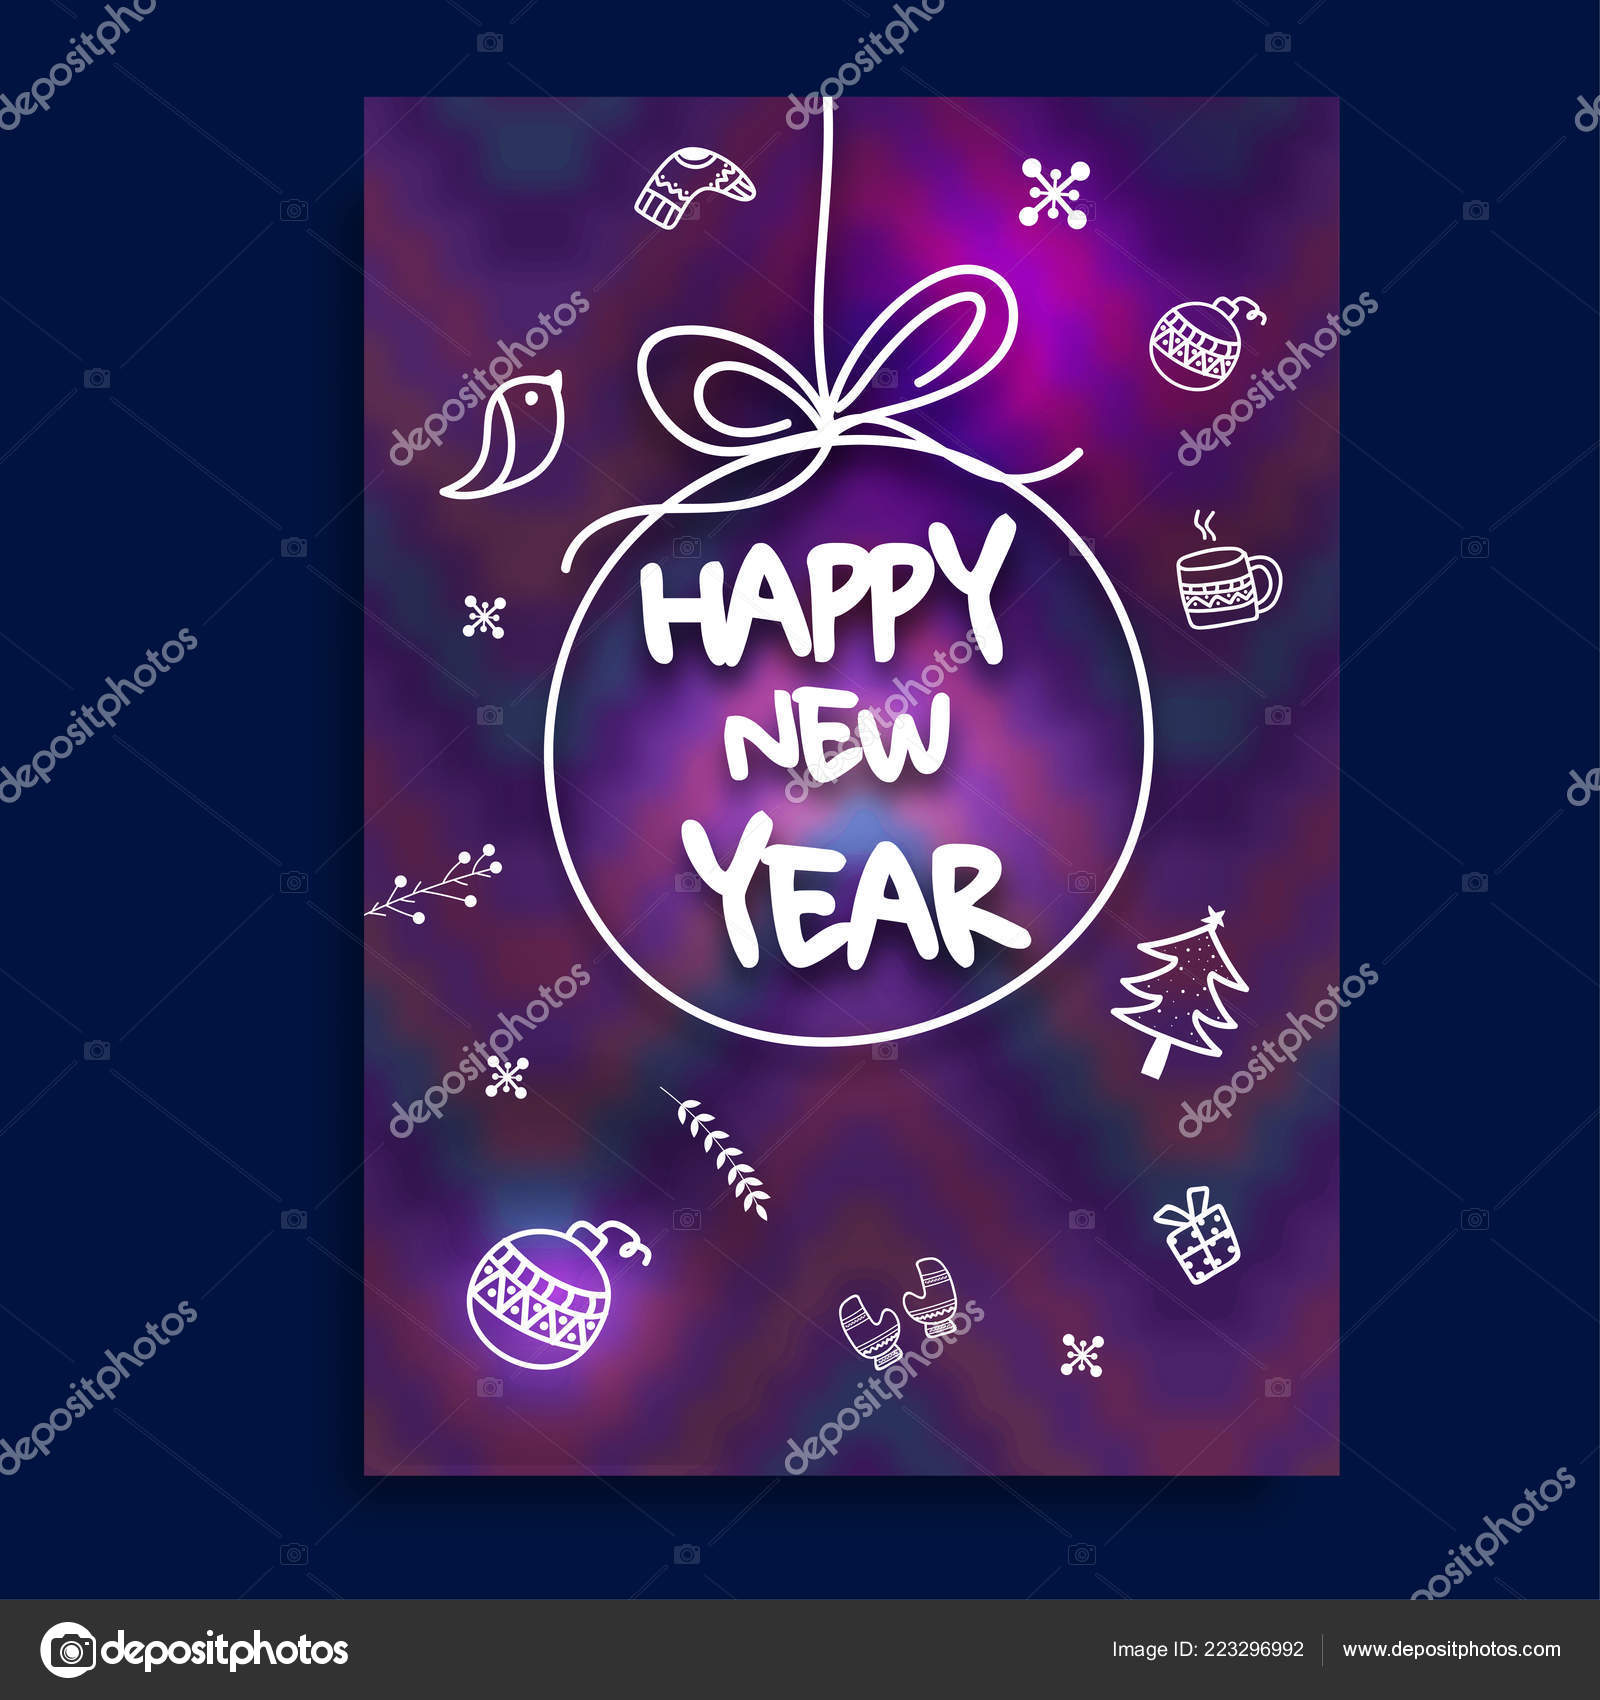 doodle elements decorated purple greeting card design for happy new year celebration vector by alliesinteract